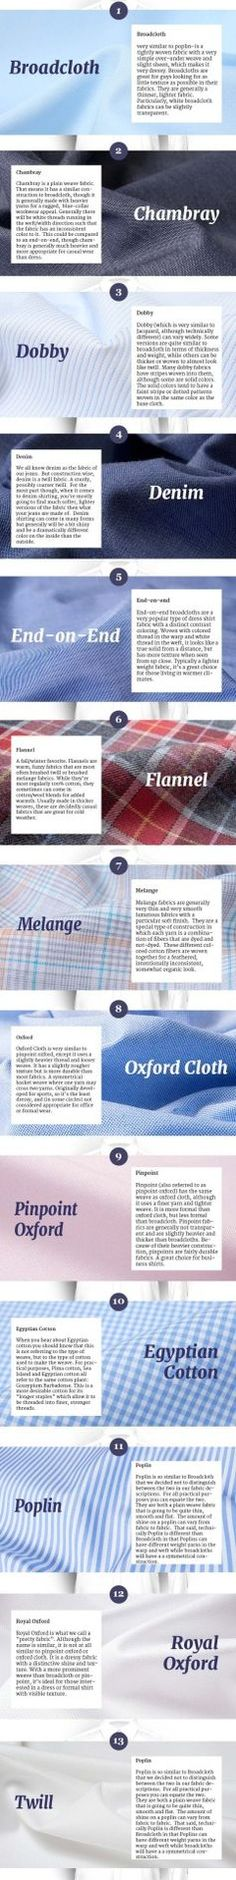 A visual glossary of dress shirt fabrics